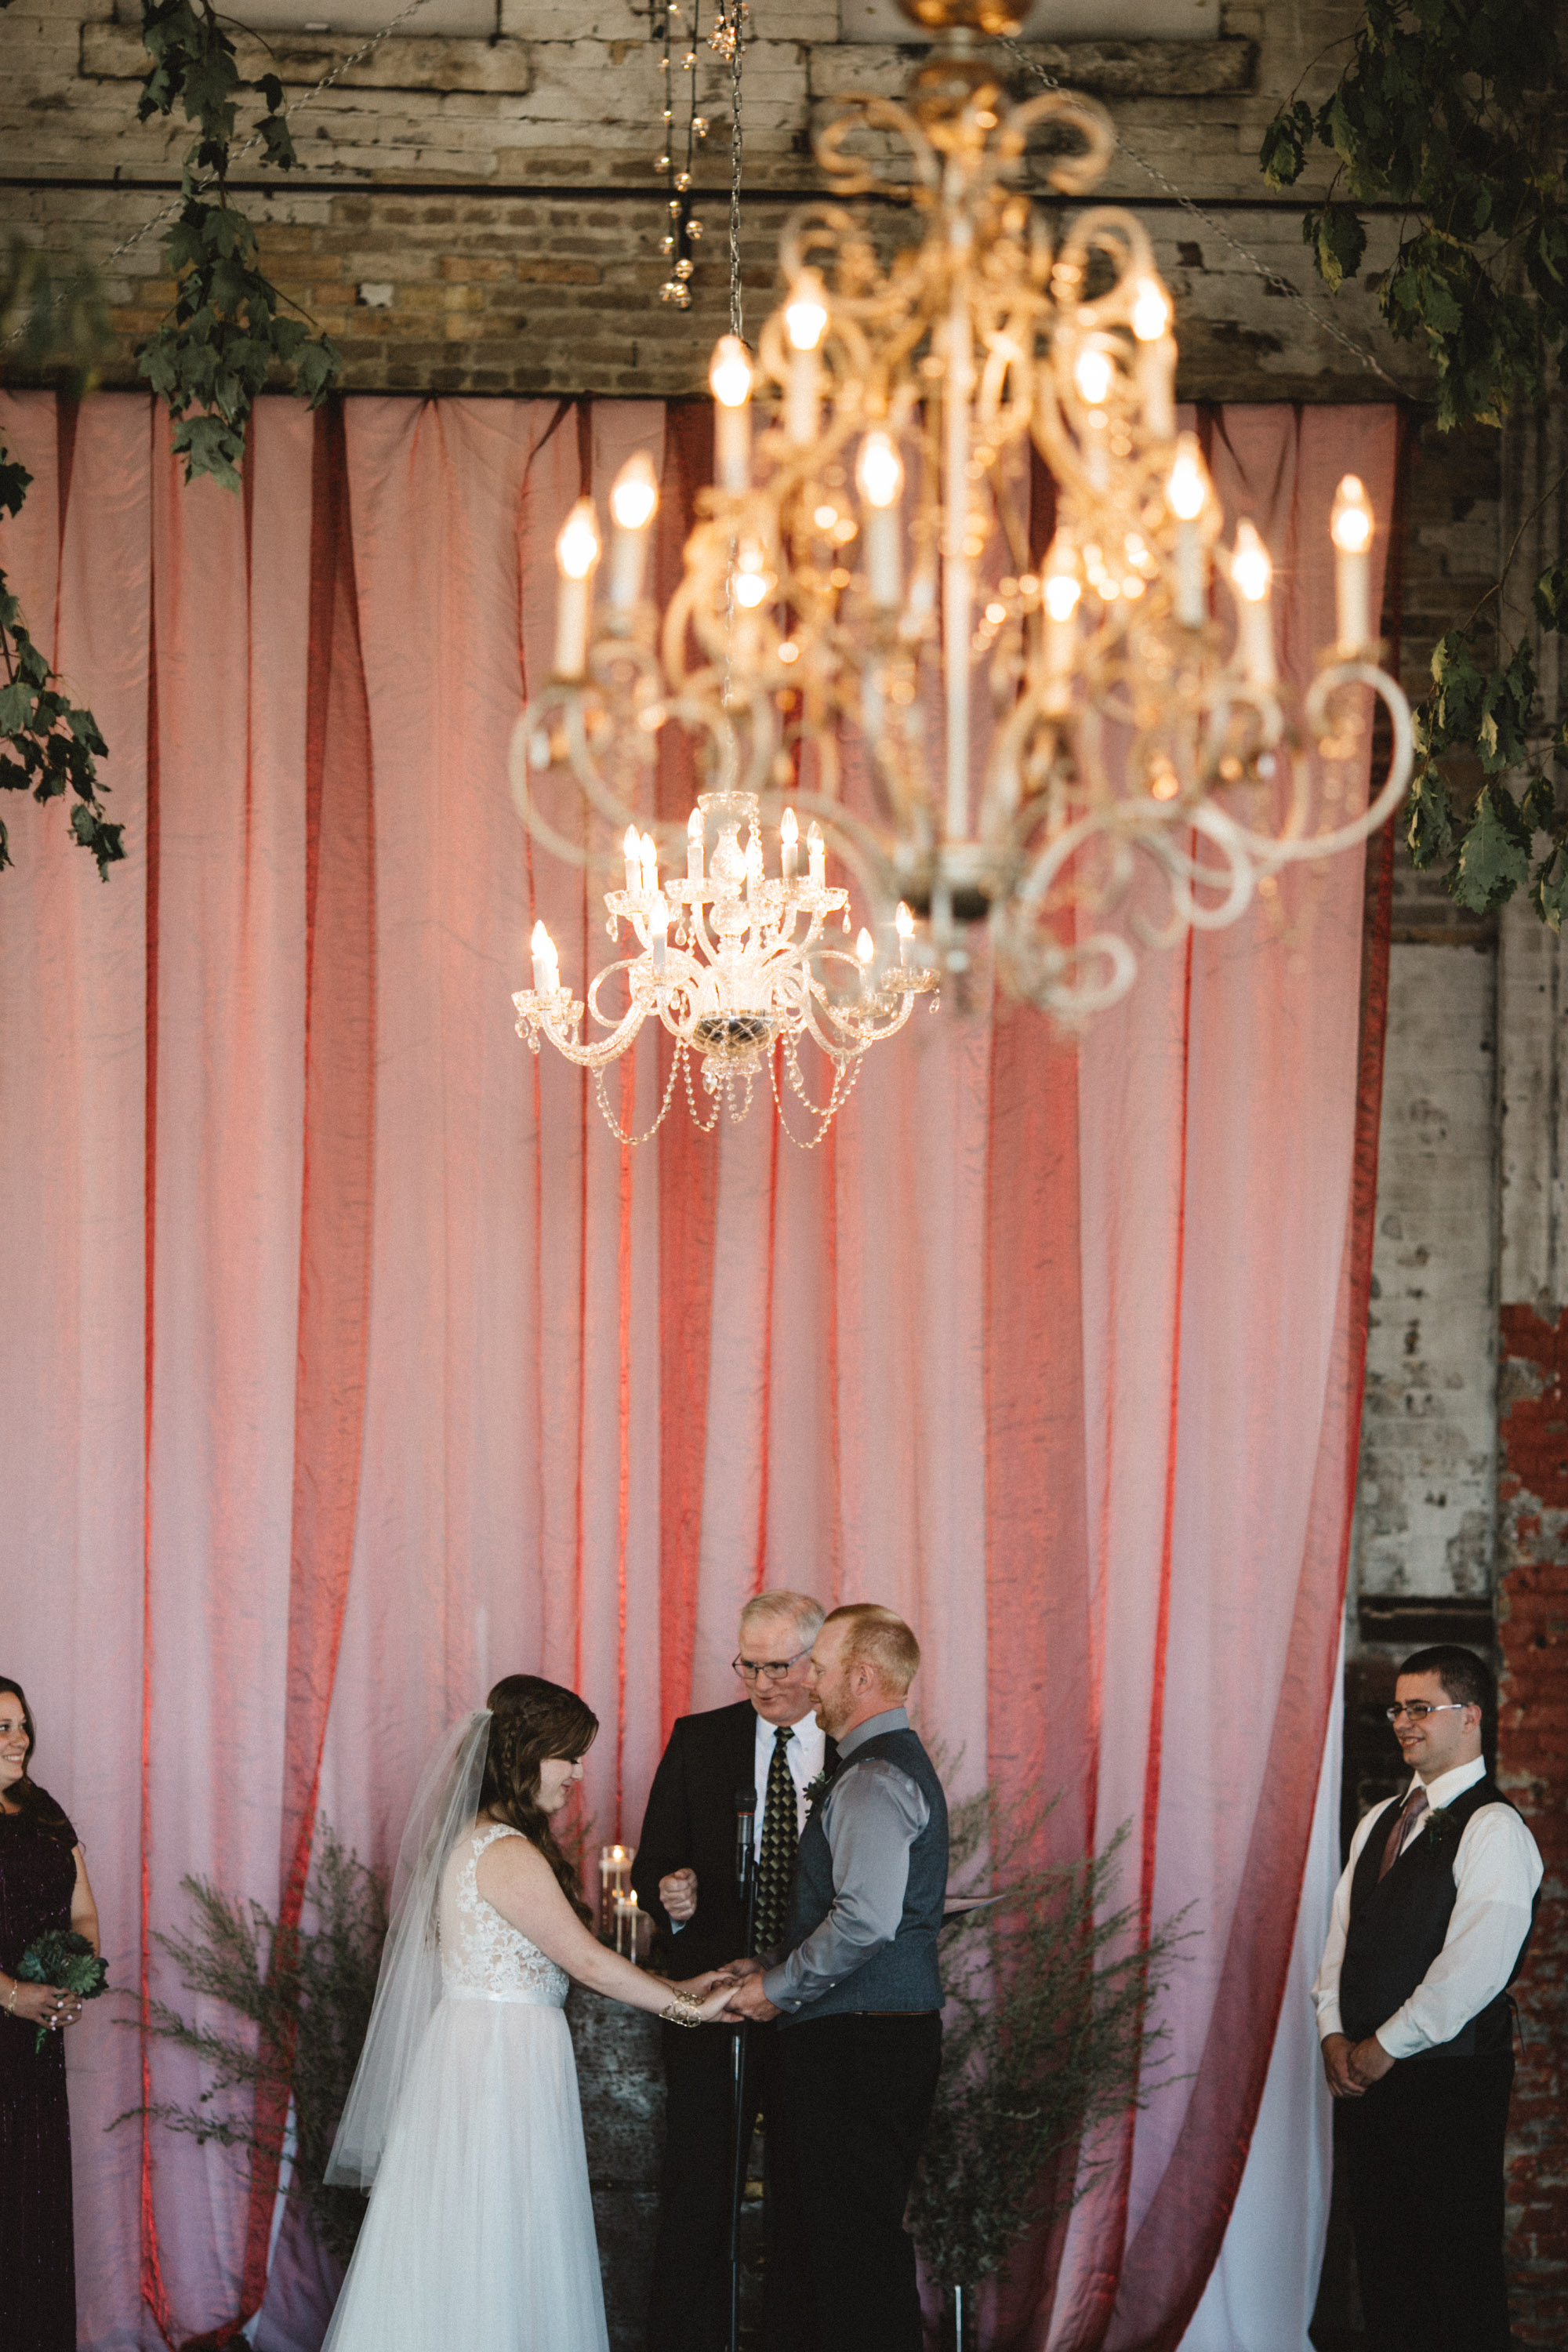 Indoor warehouse wedding ceremony at the NP Event Space. Photography by Britt DeZeeuw